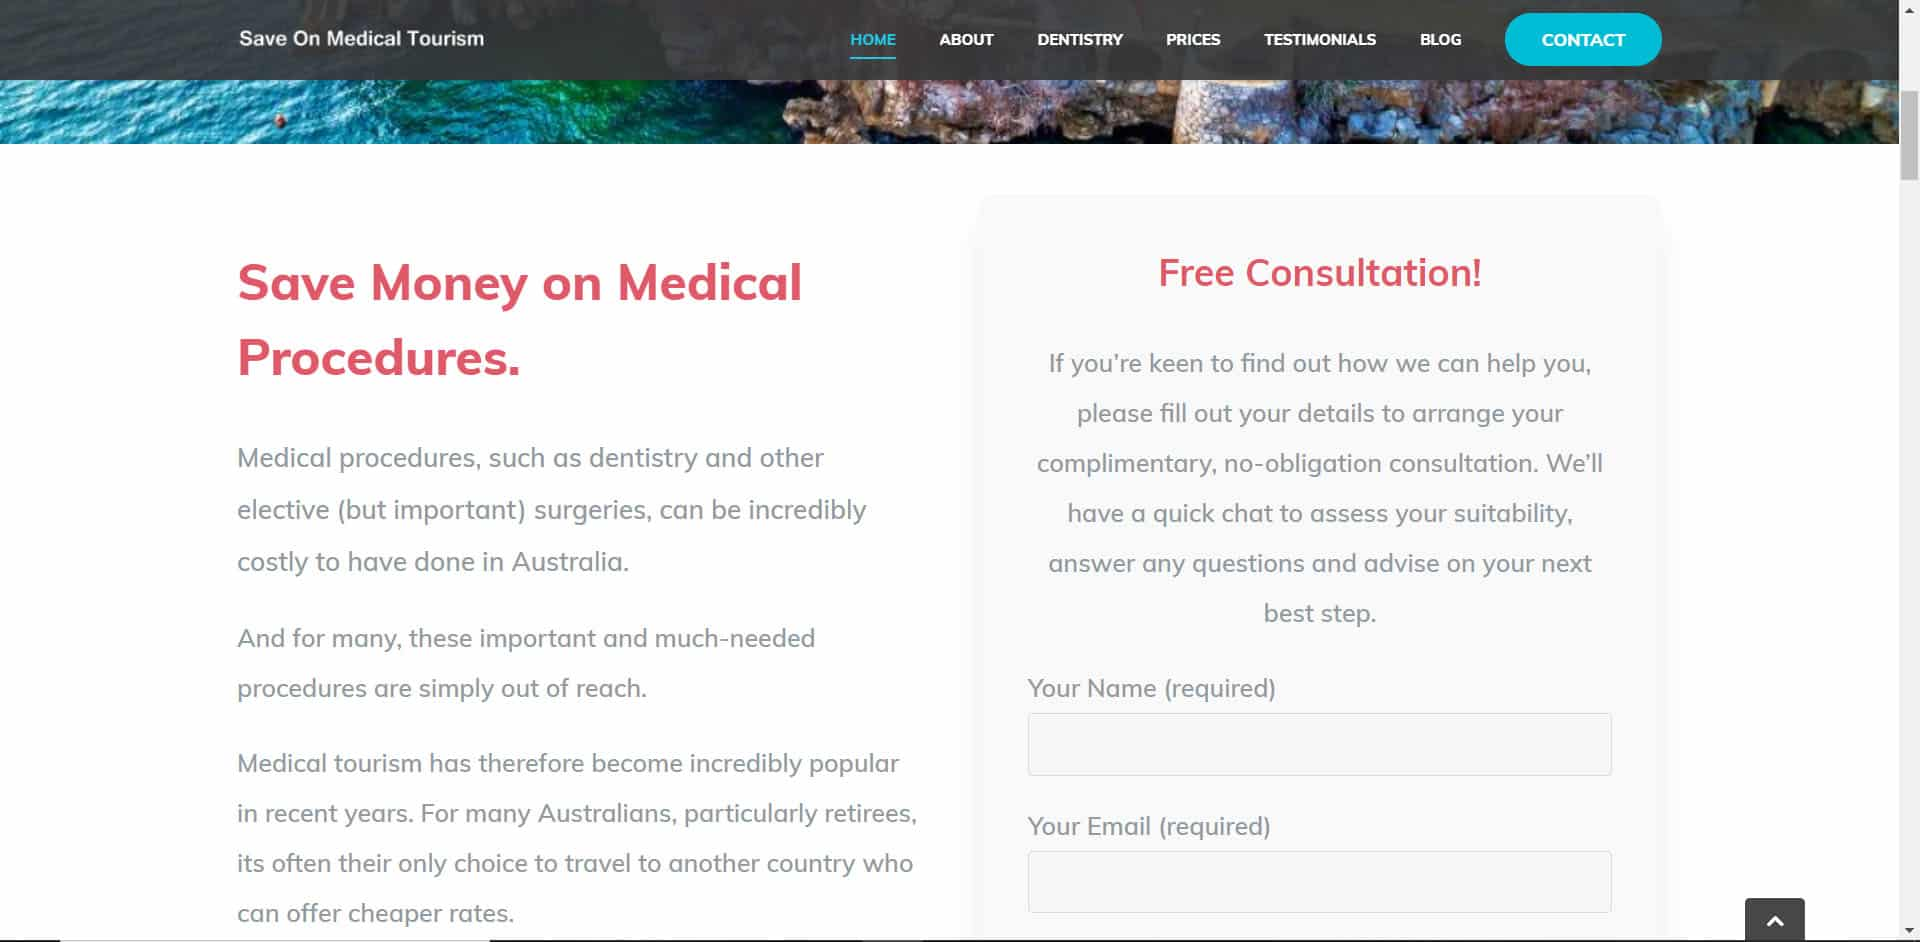 Save on Medical Tourism - Home Page Sample 2